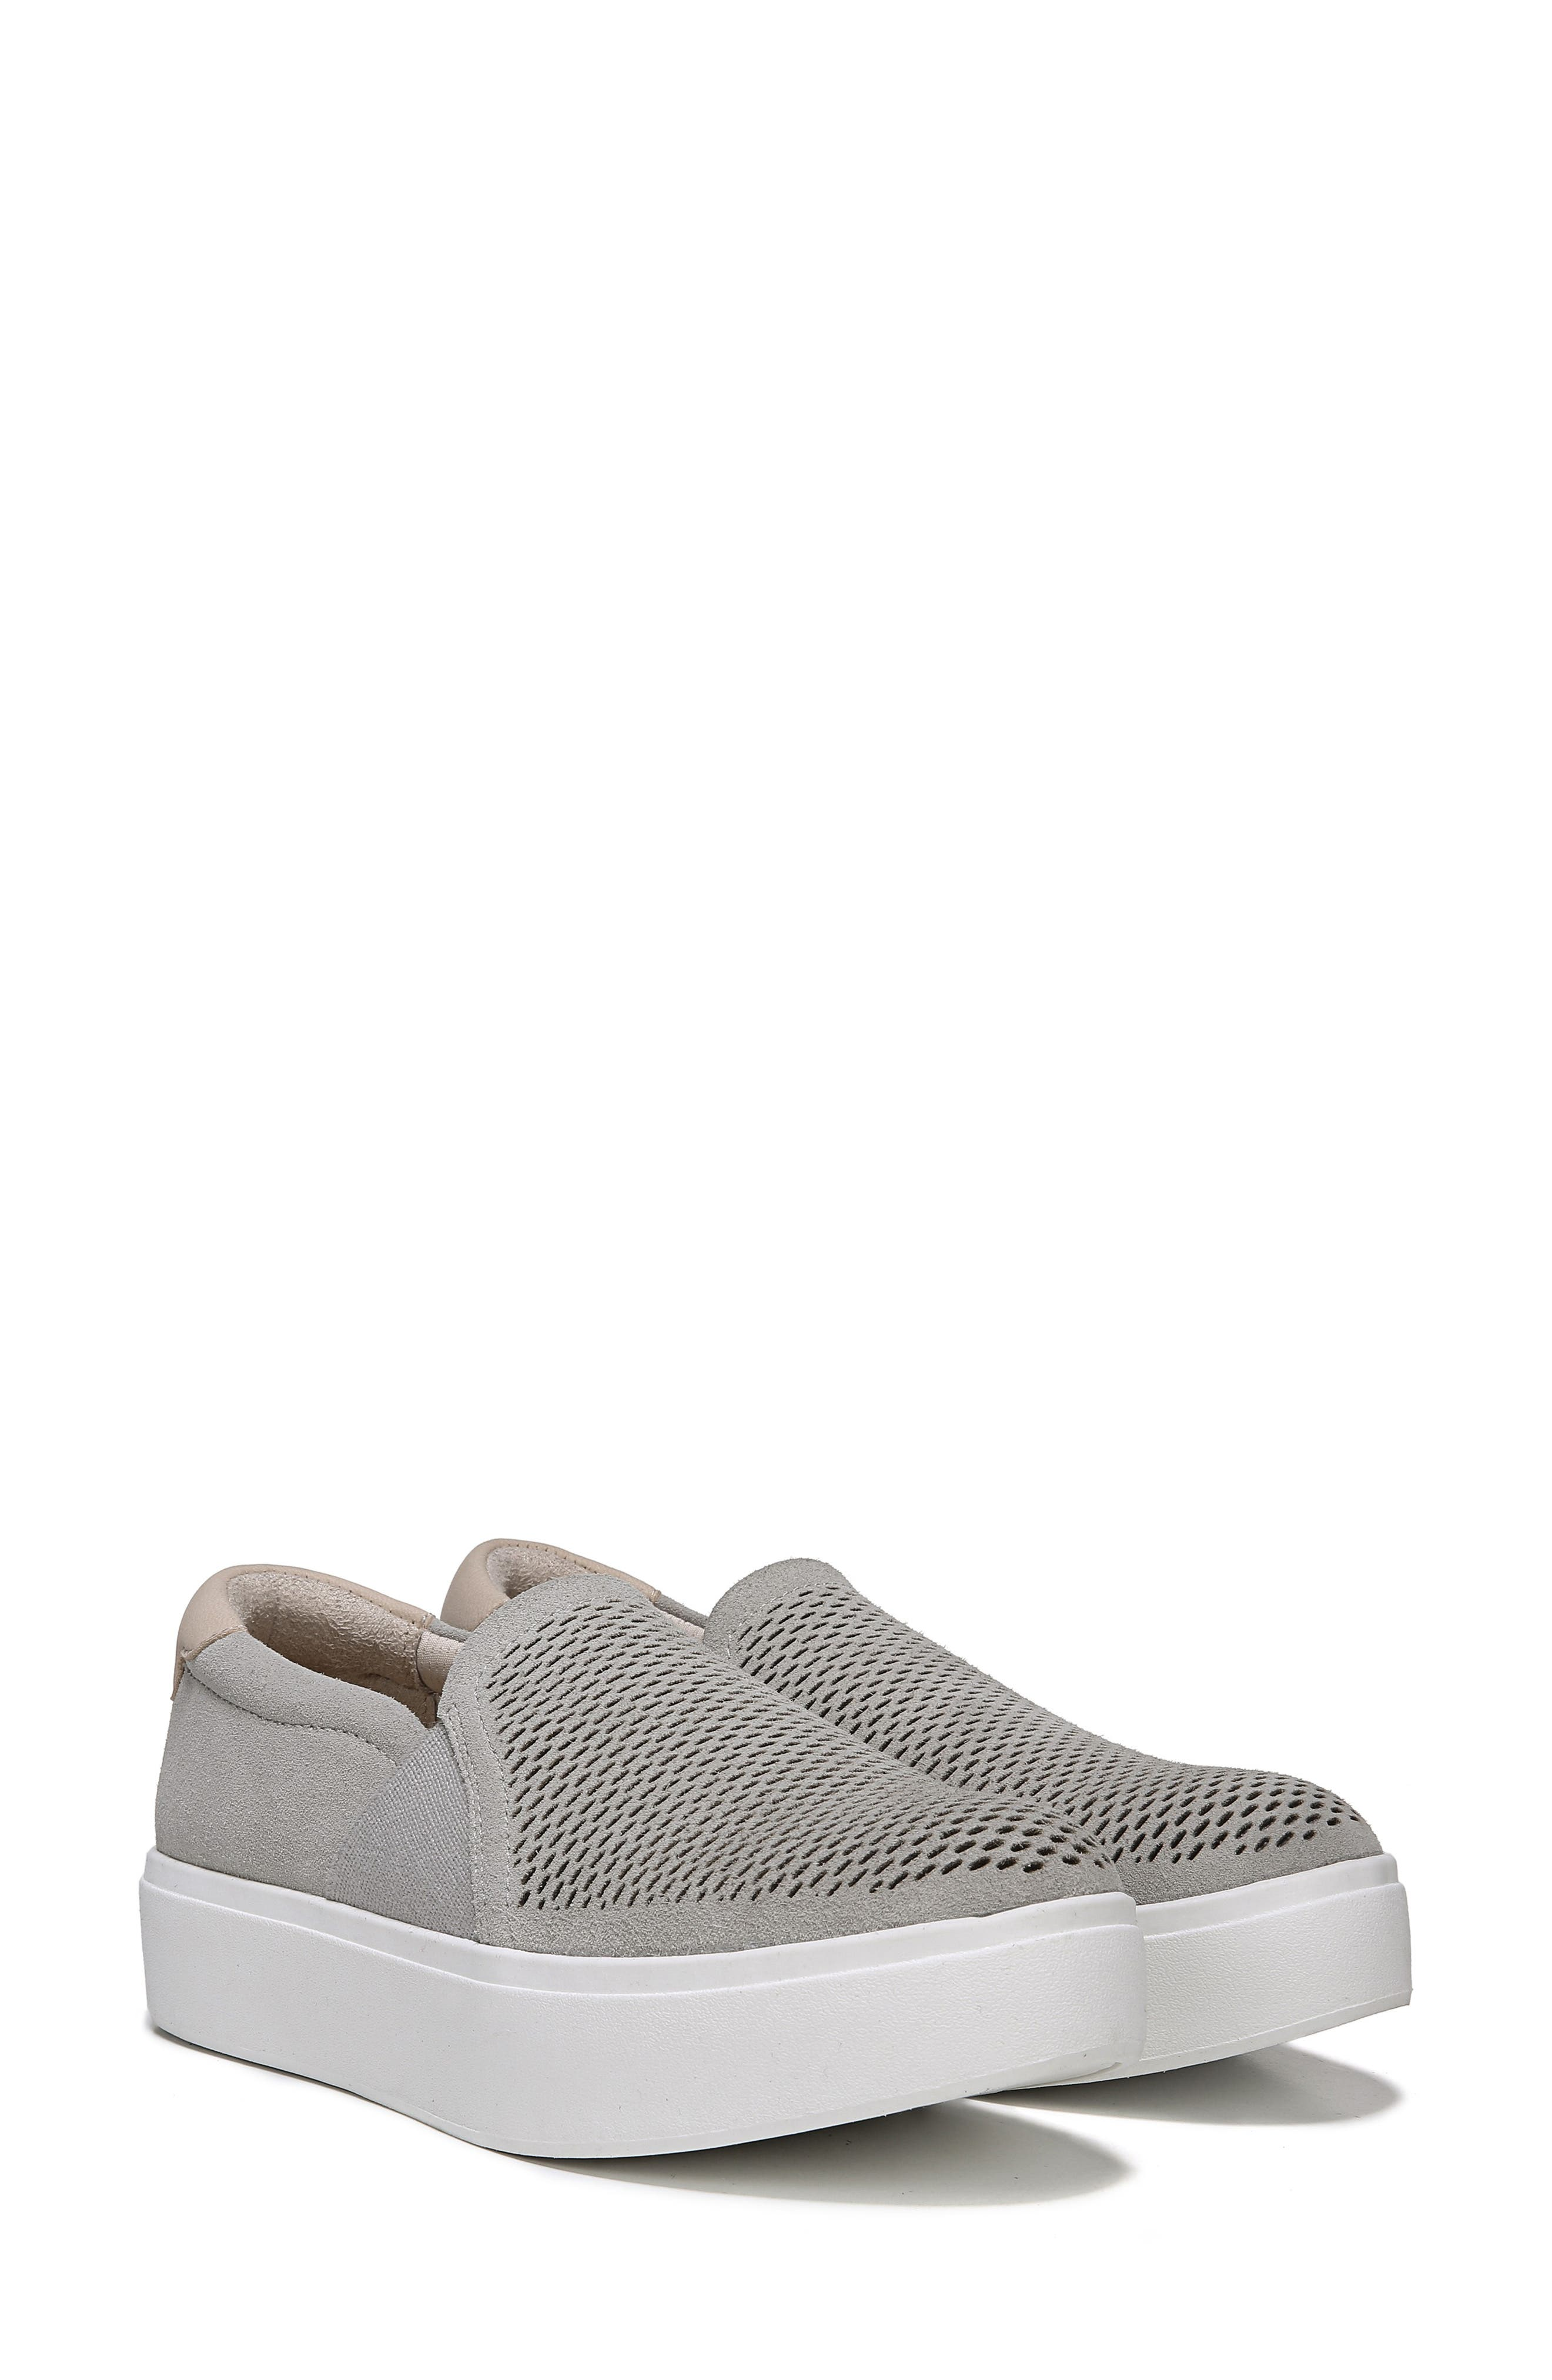 Abbot Lux Sneaker,                             Alternate thumbnail 8, color,                             GREY LEATHER